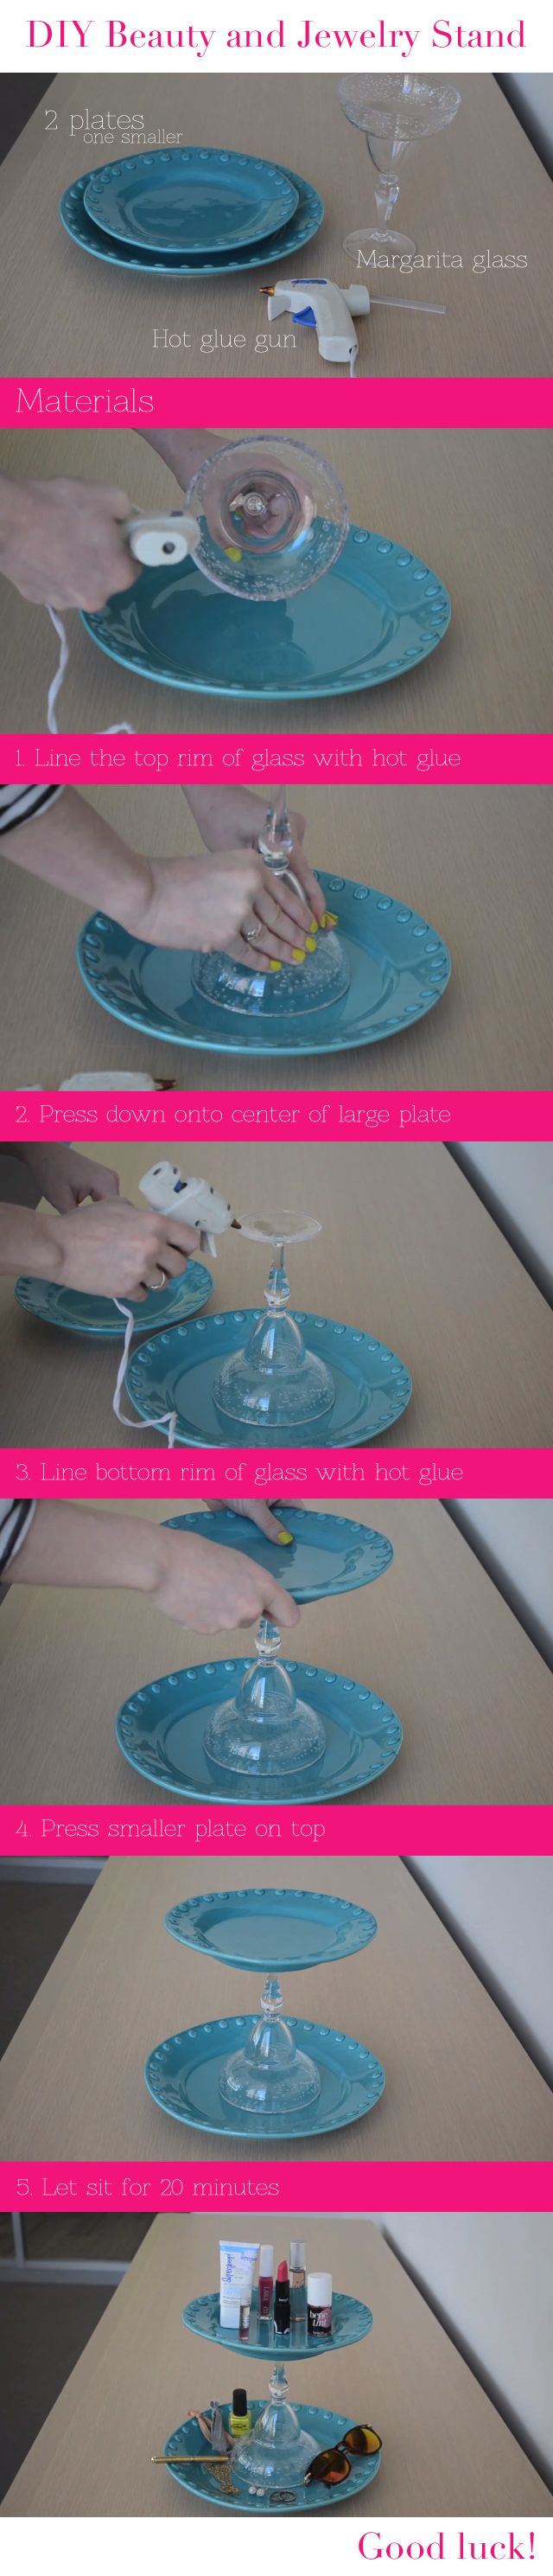 How to create your own makeup or jewelry stand using plates and a margarita glass!